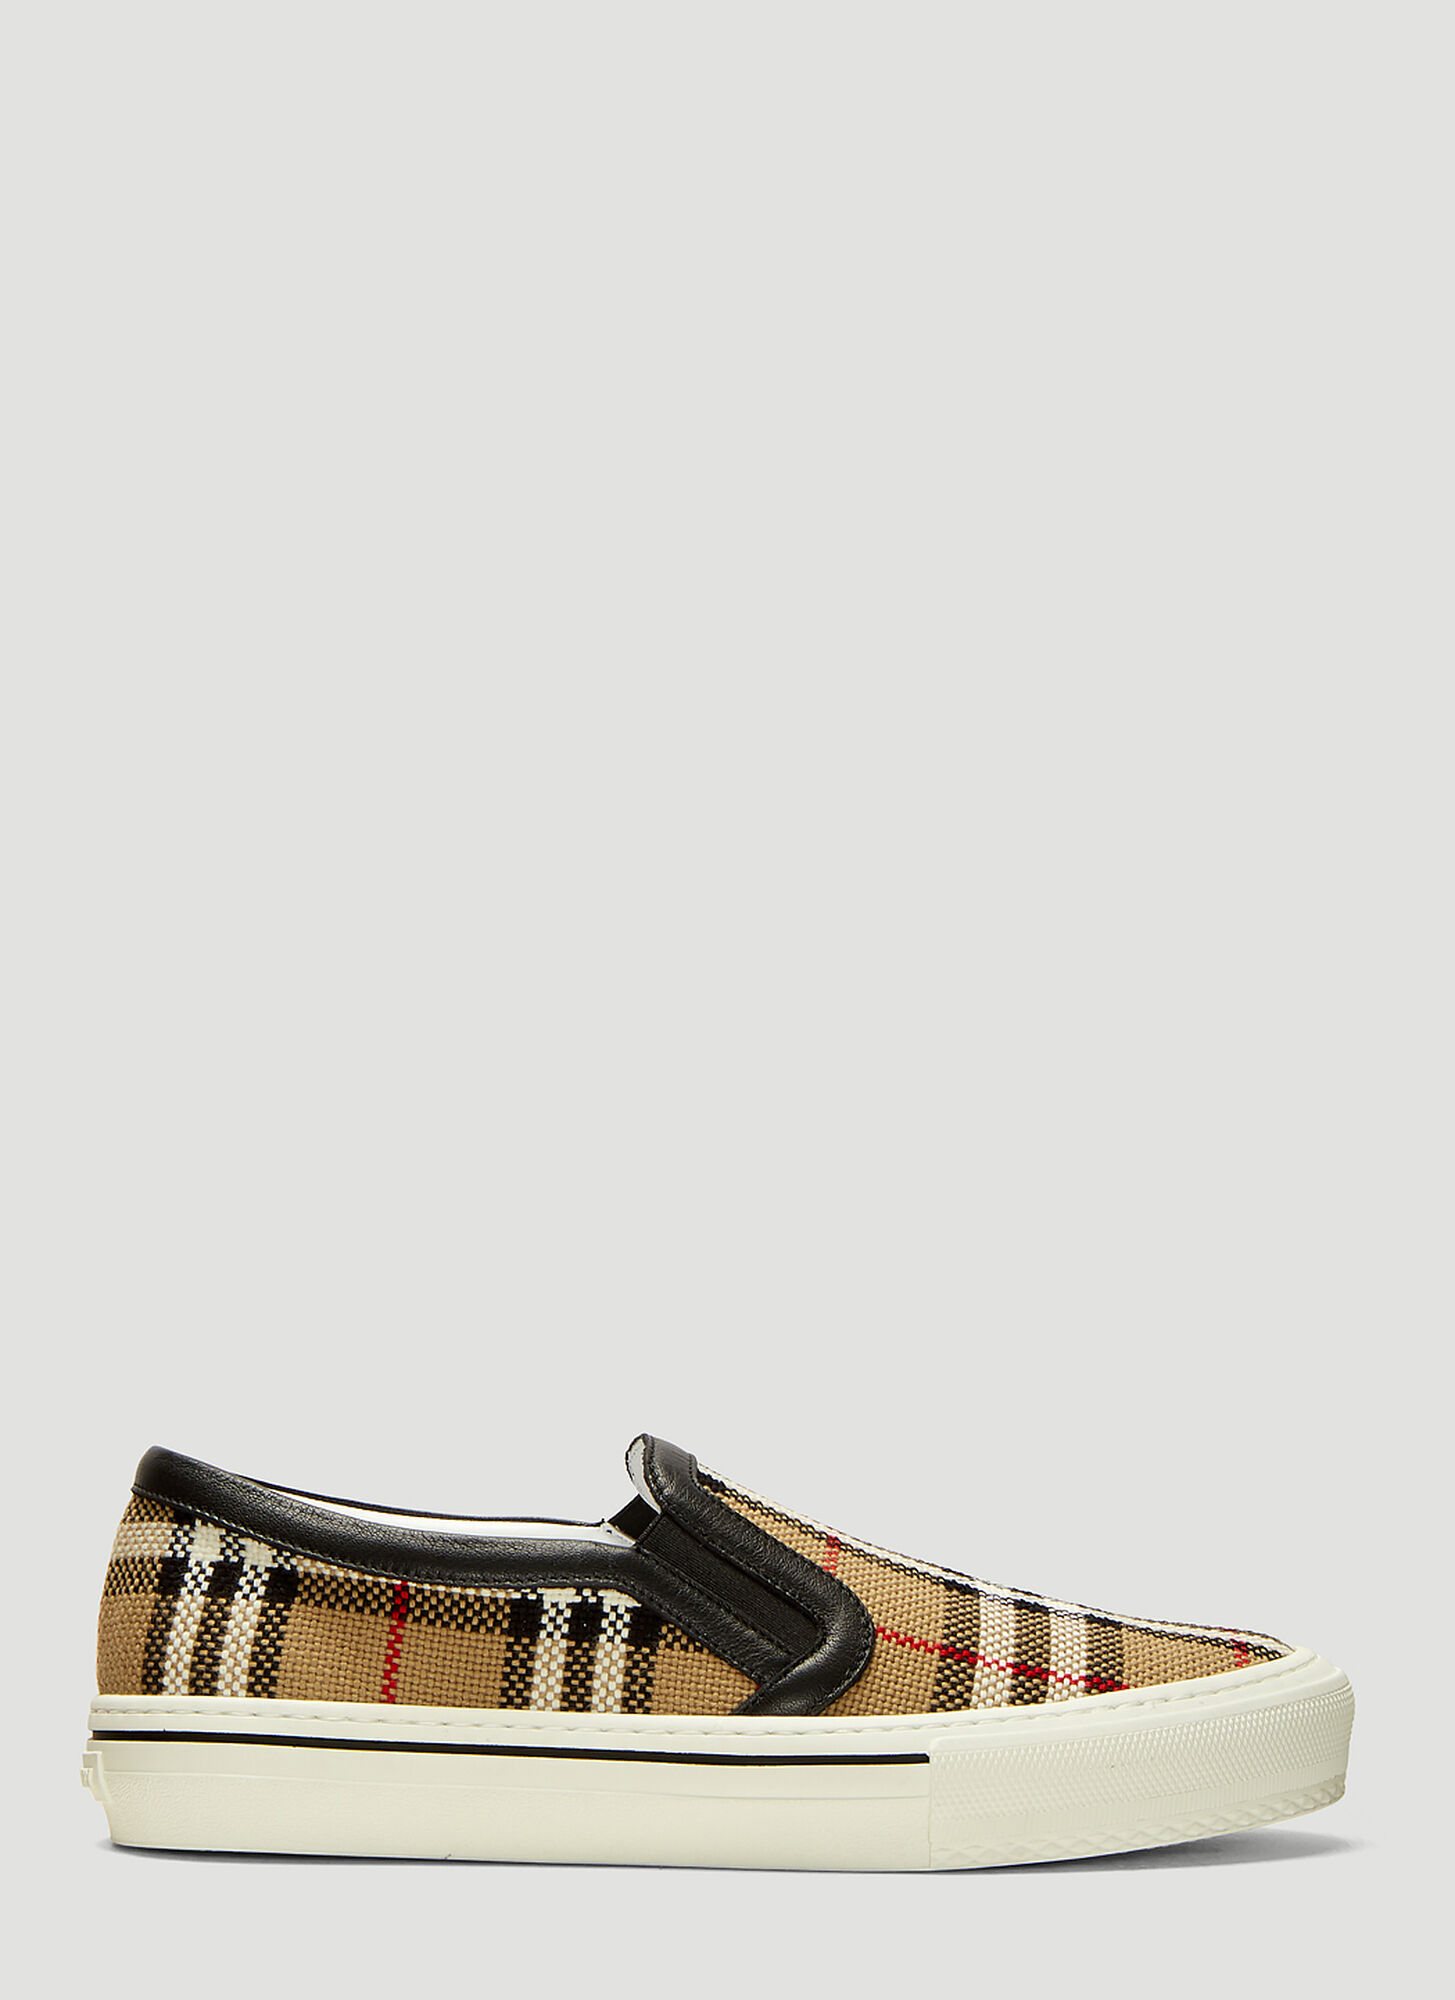 Burberry Vintage Check Woven Slip On Sneakers in Beige